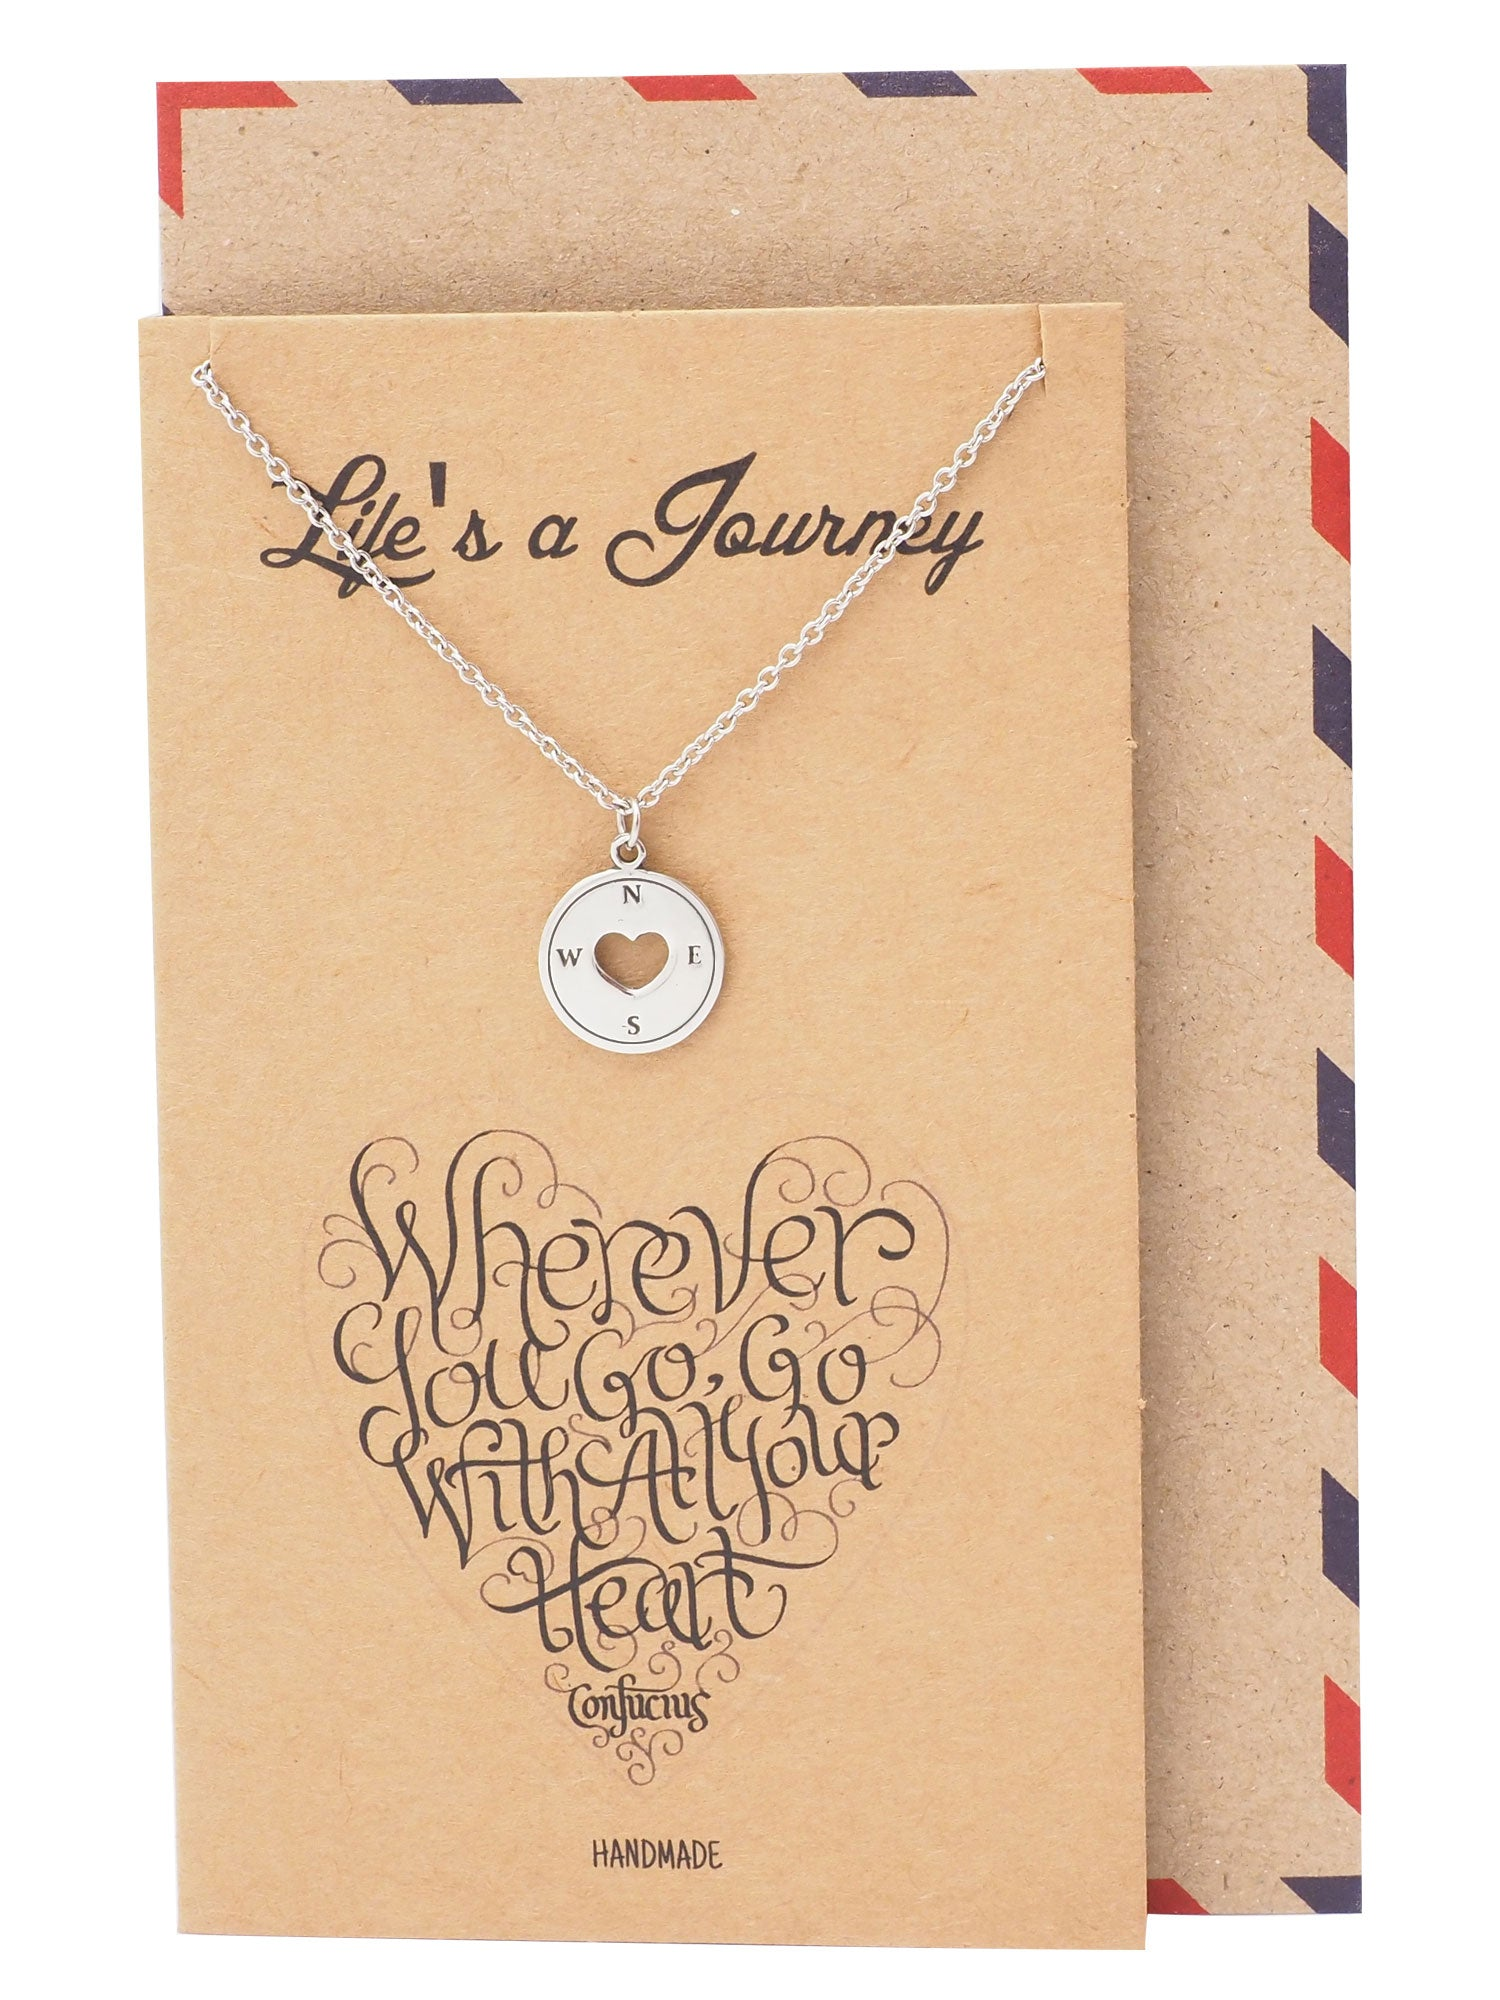 Samara Graduation Gifts Compass Necklace Inspirational Jewelry